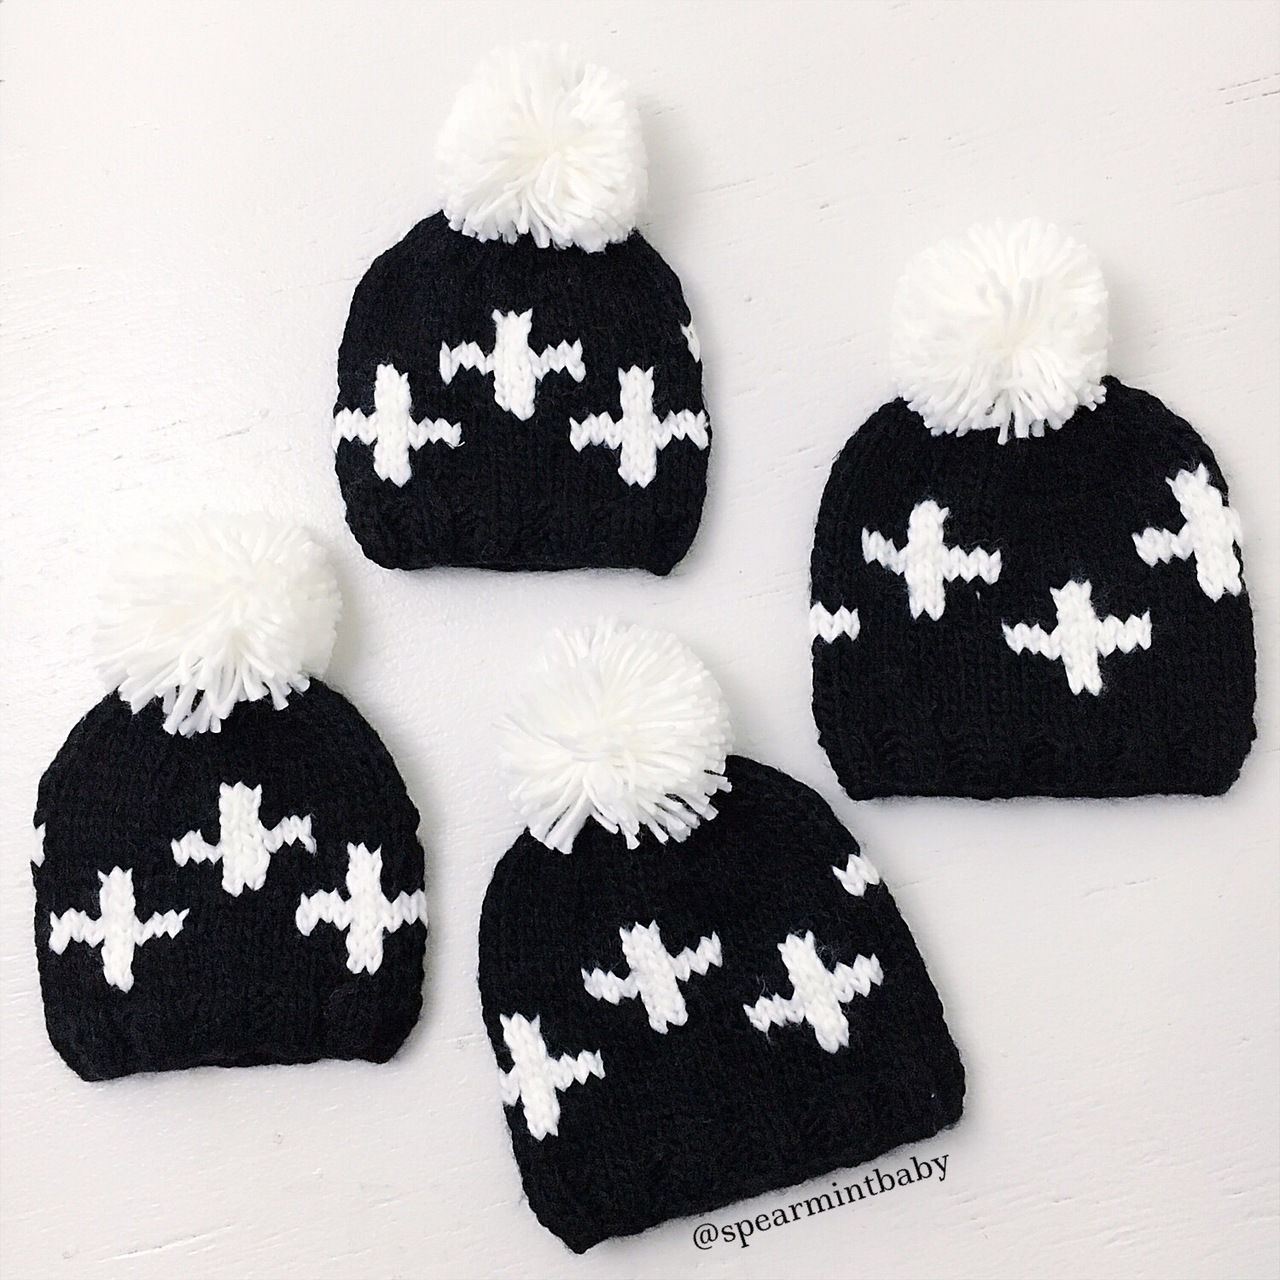 Black and white baby gifts: Cross hat | Spearmint Love